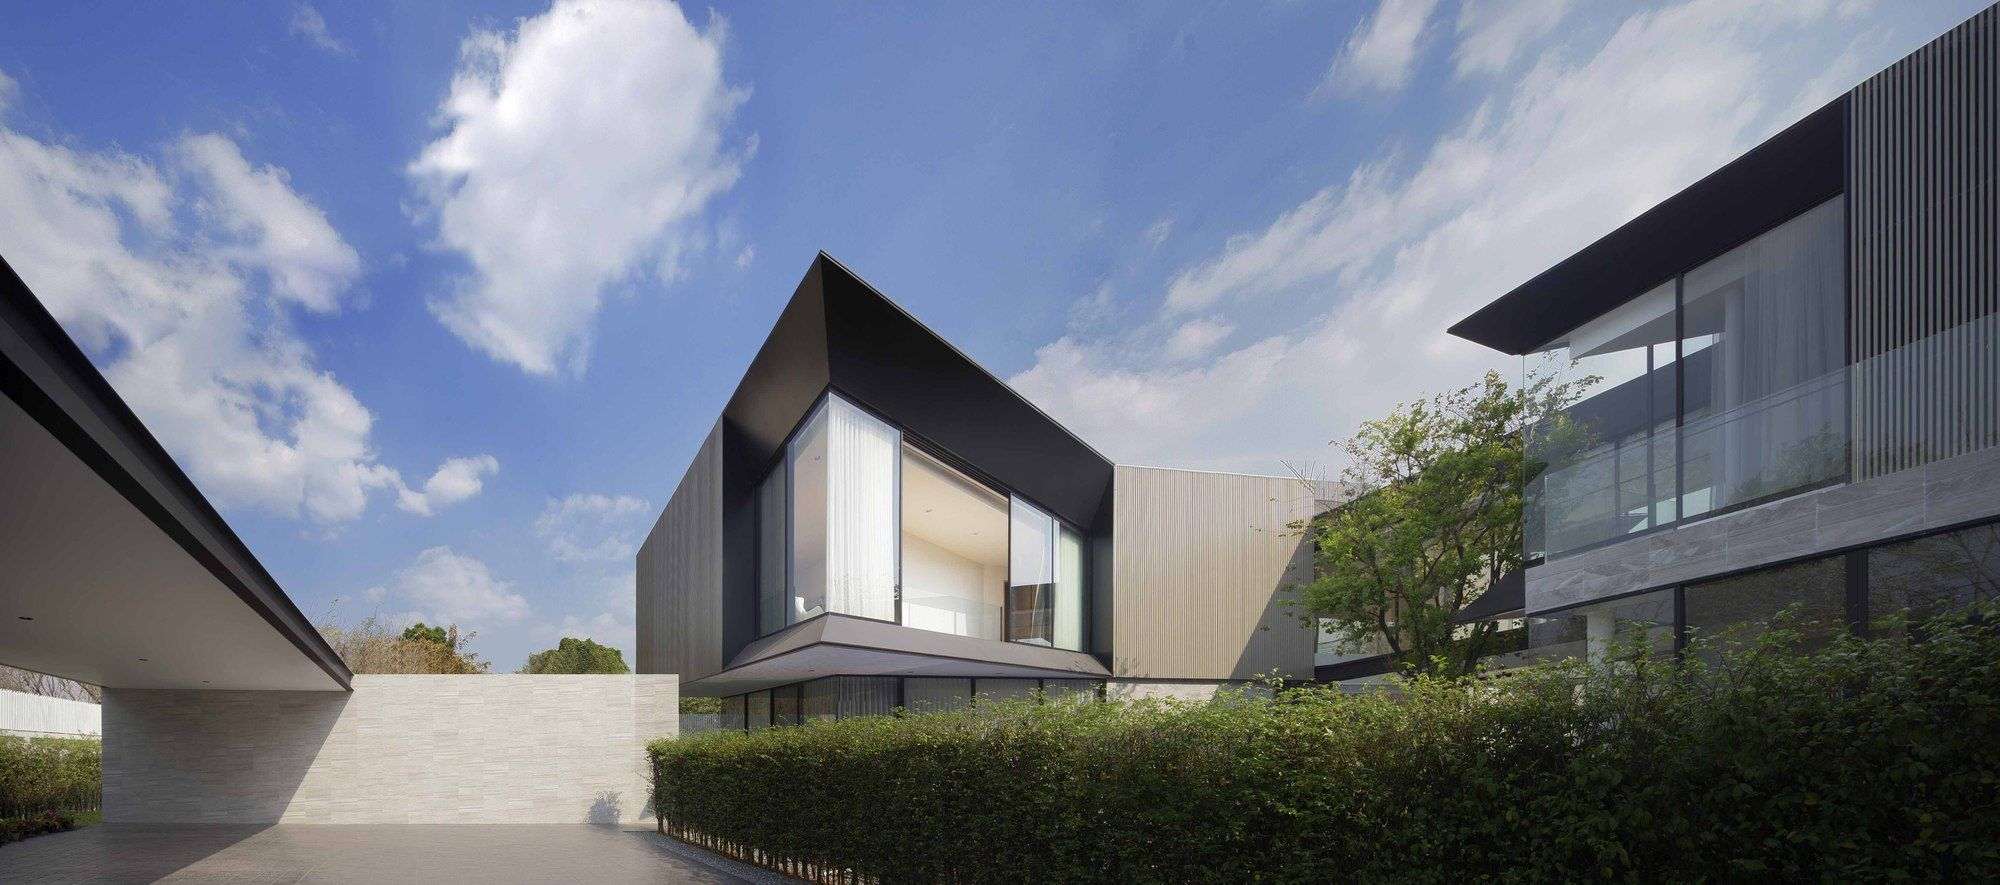 Gallery Of Aluminium House Ayutt And Associates Design 22 Architecture House Tropical Houses